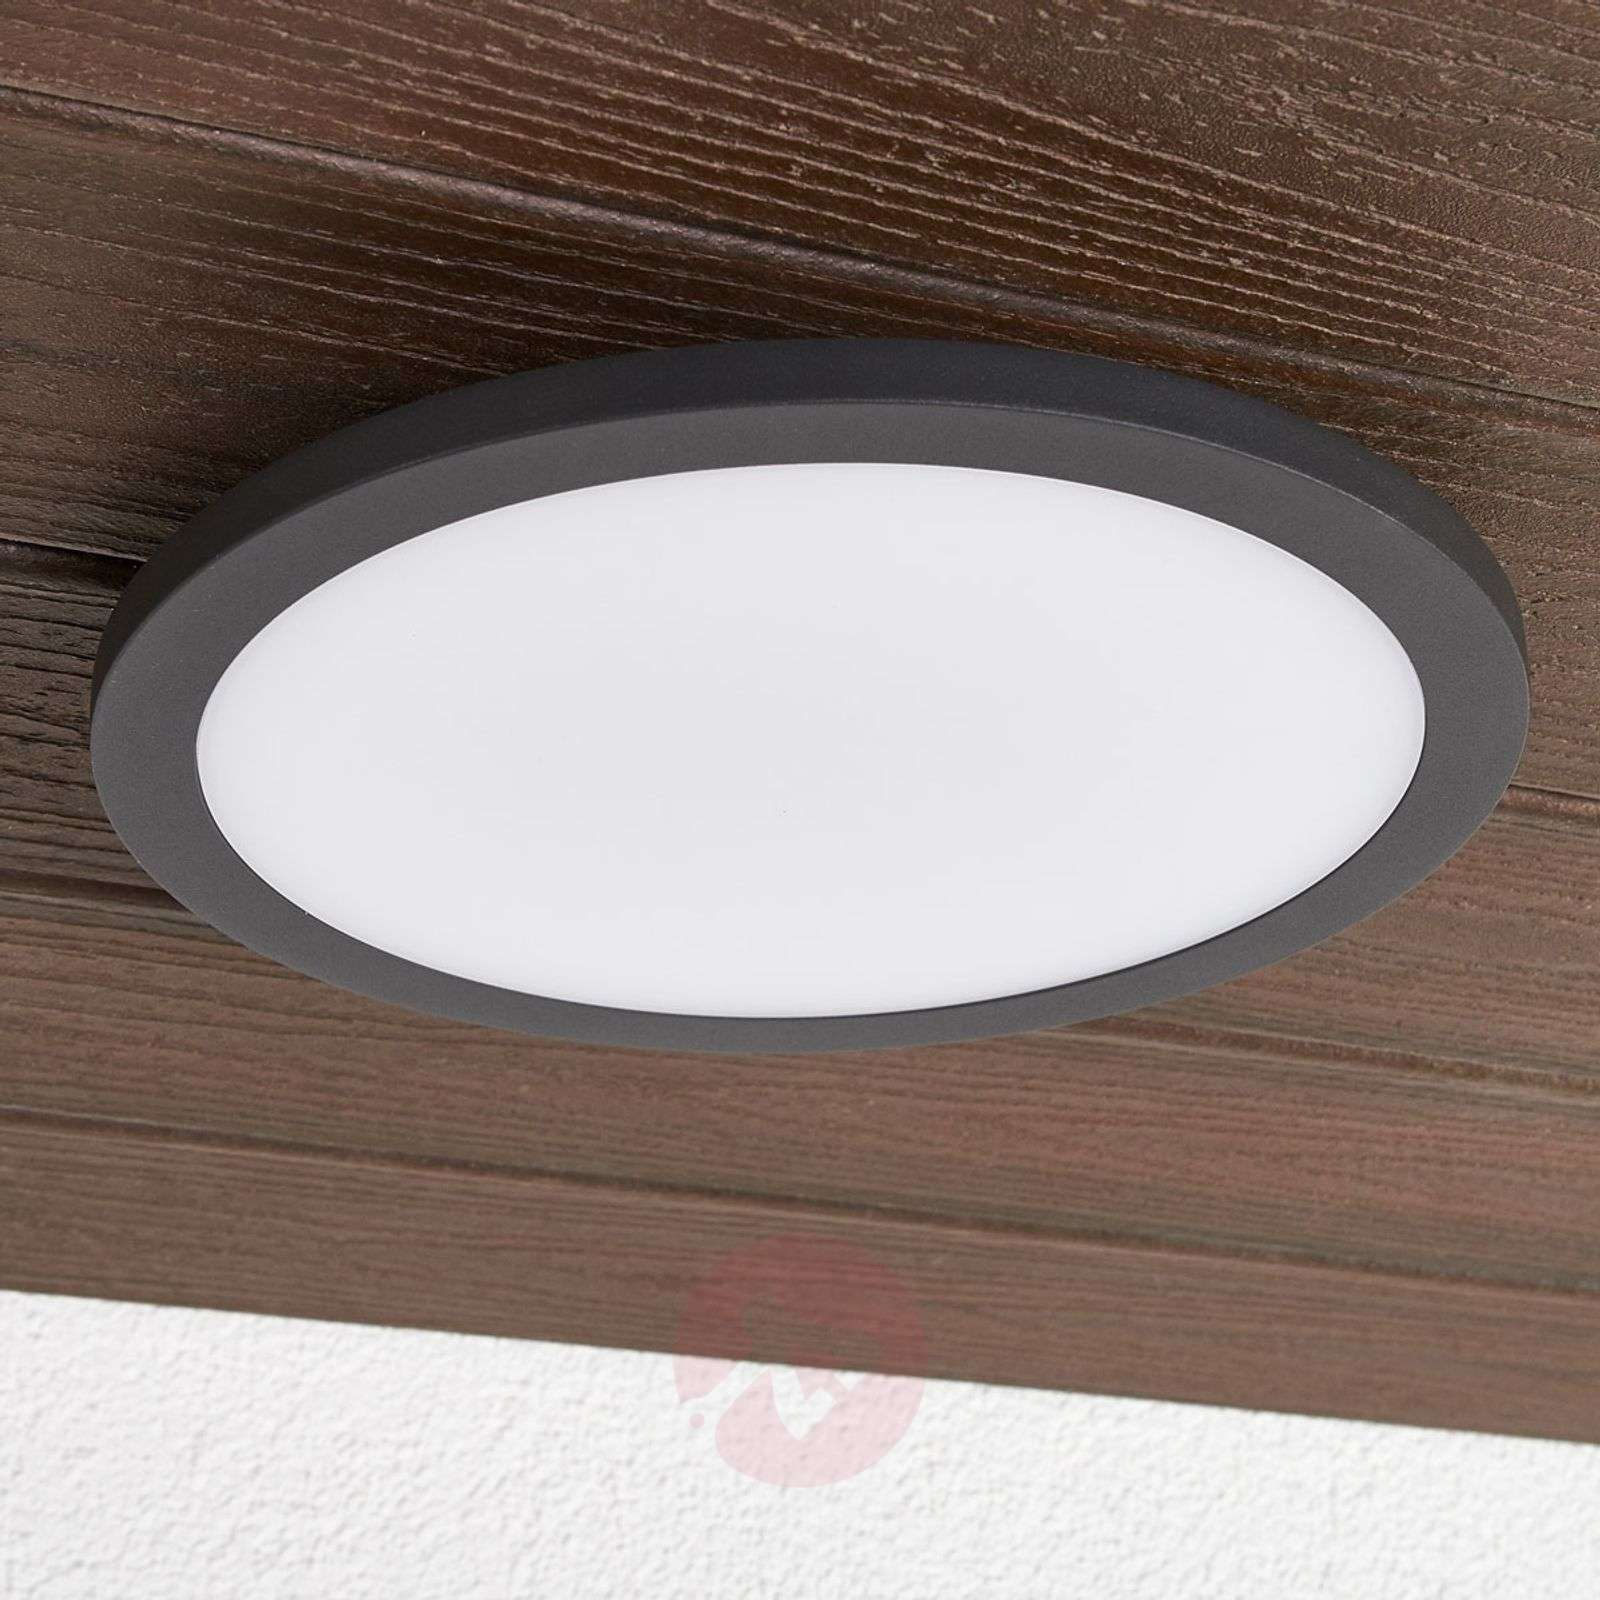 Led Outdoor Ceiling Light Malena With Sensor 9619112 03